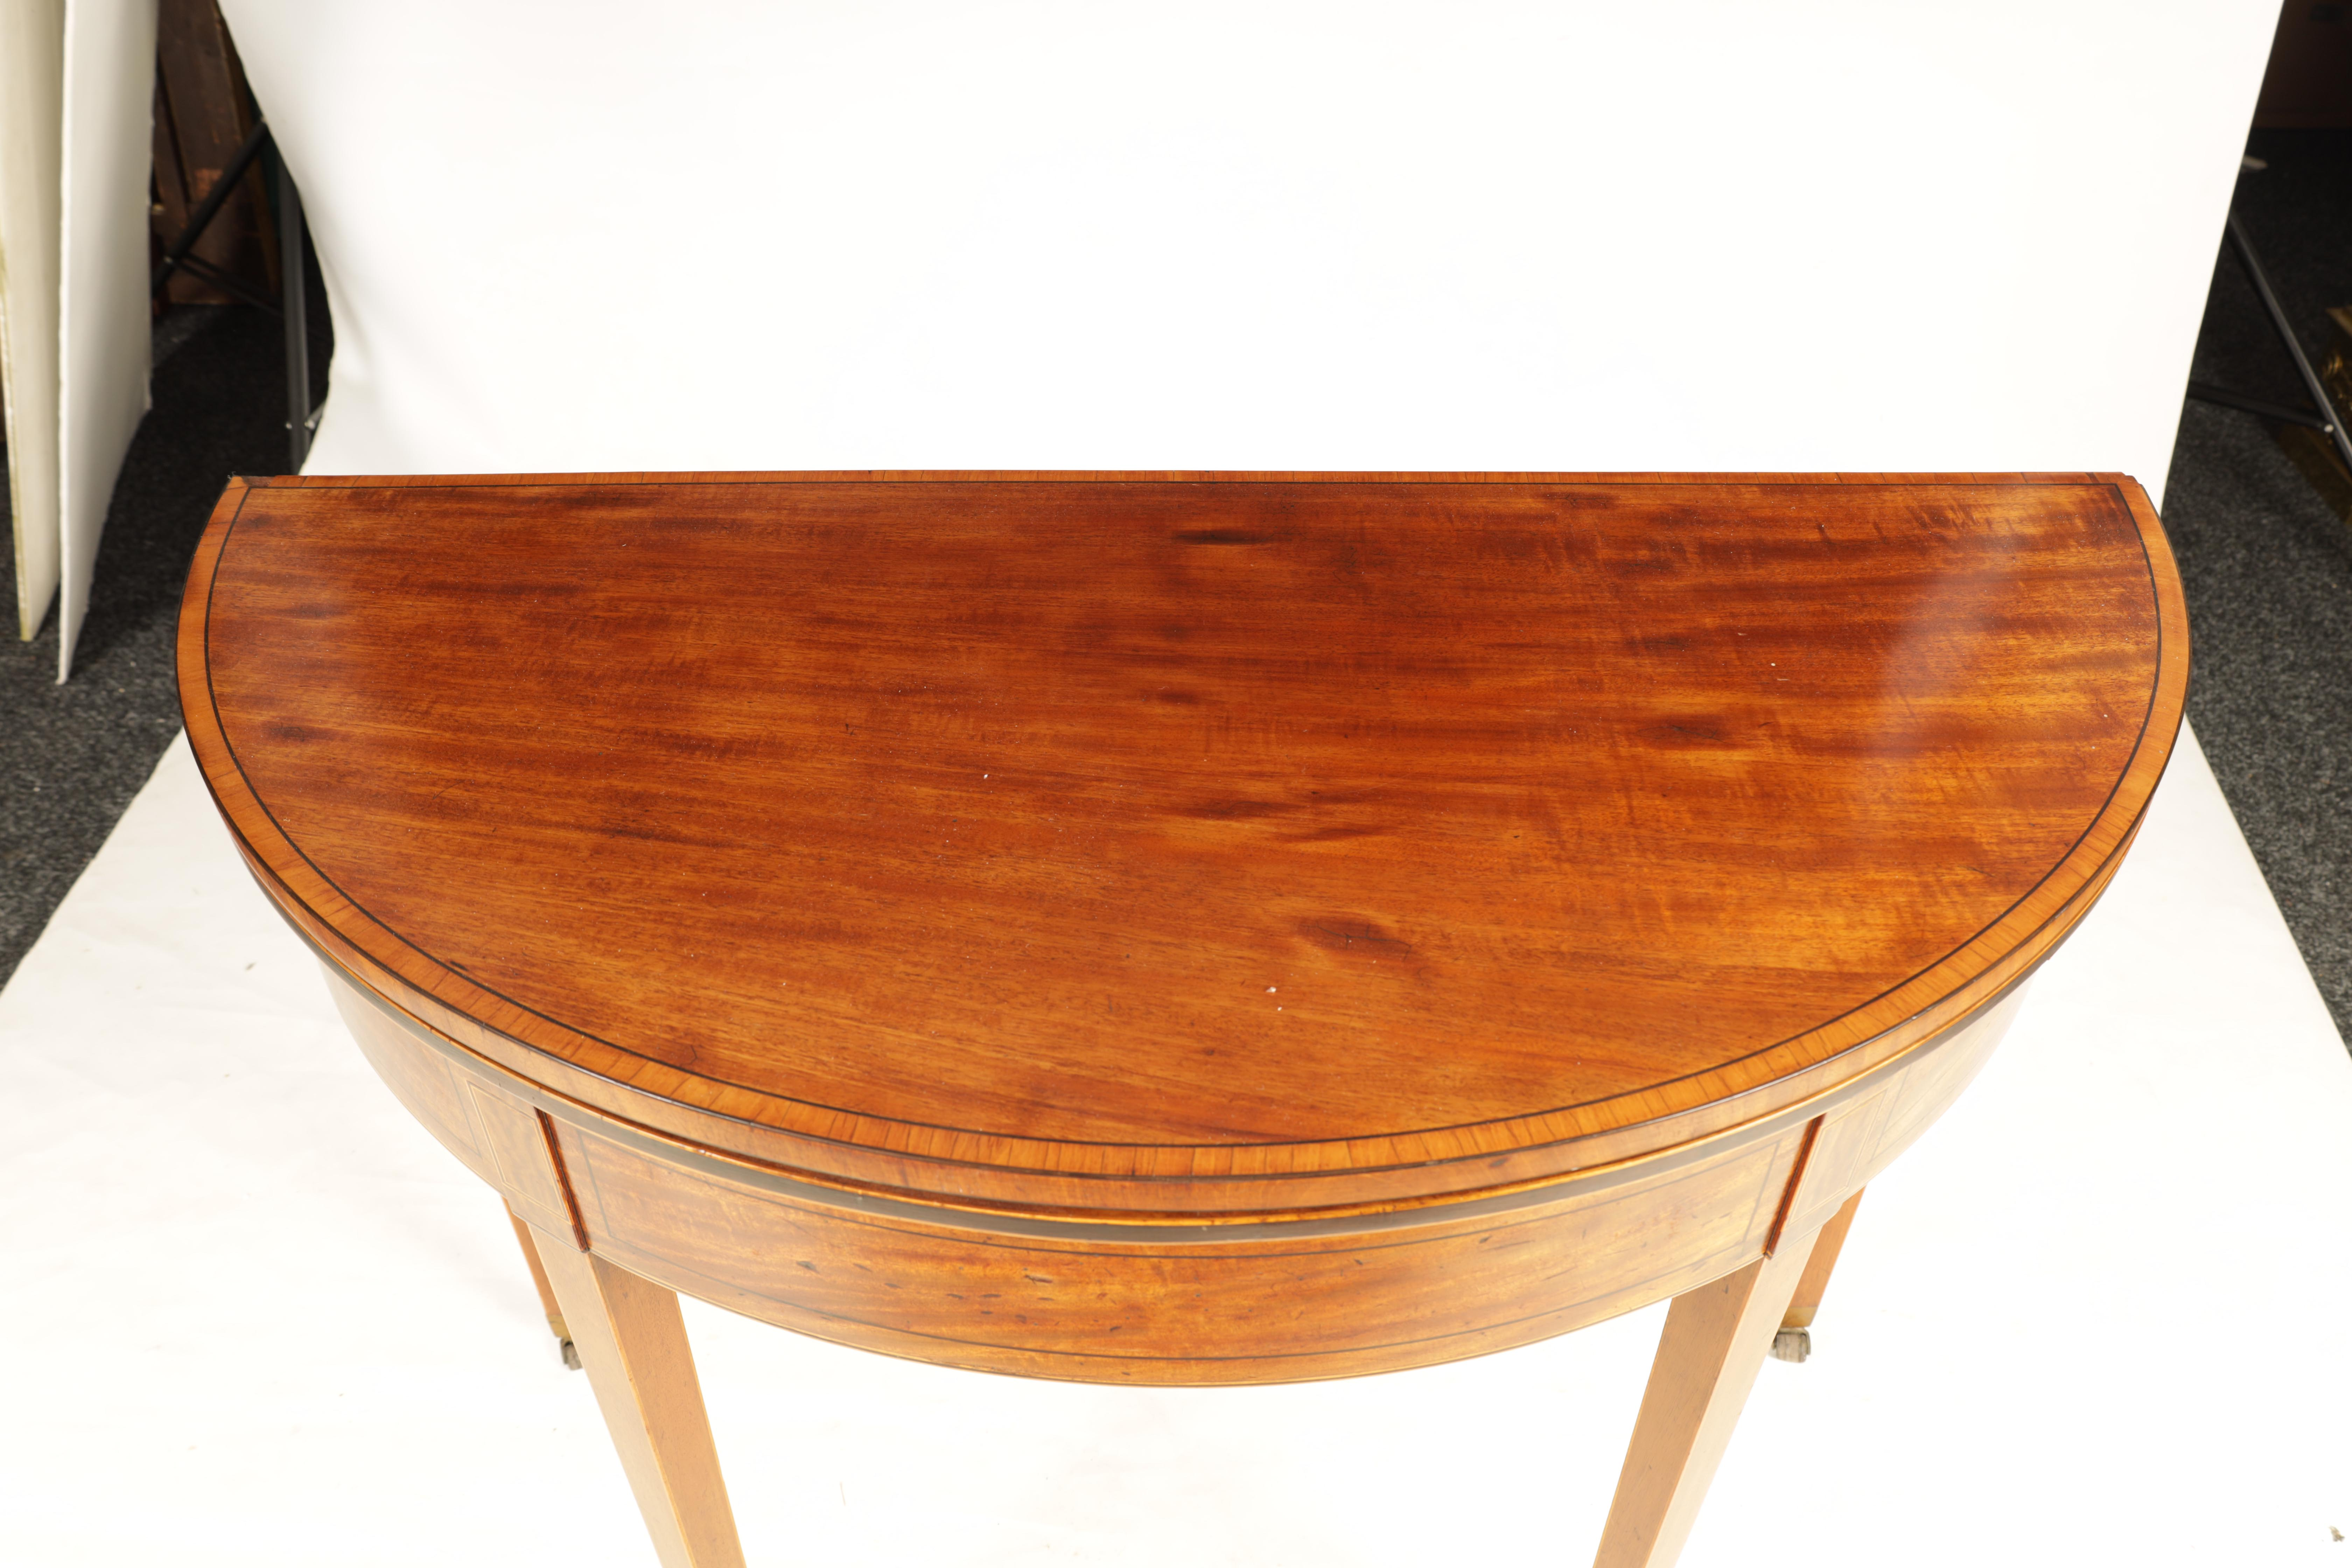 A GEORGE III FIGURED SATINWOOD D END TEA TABLE with hinged top and double gate rear legs; standing - Image 4 of 8